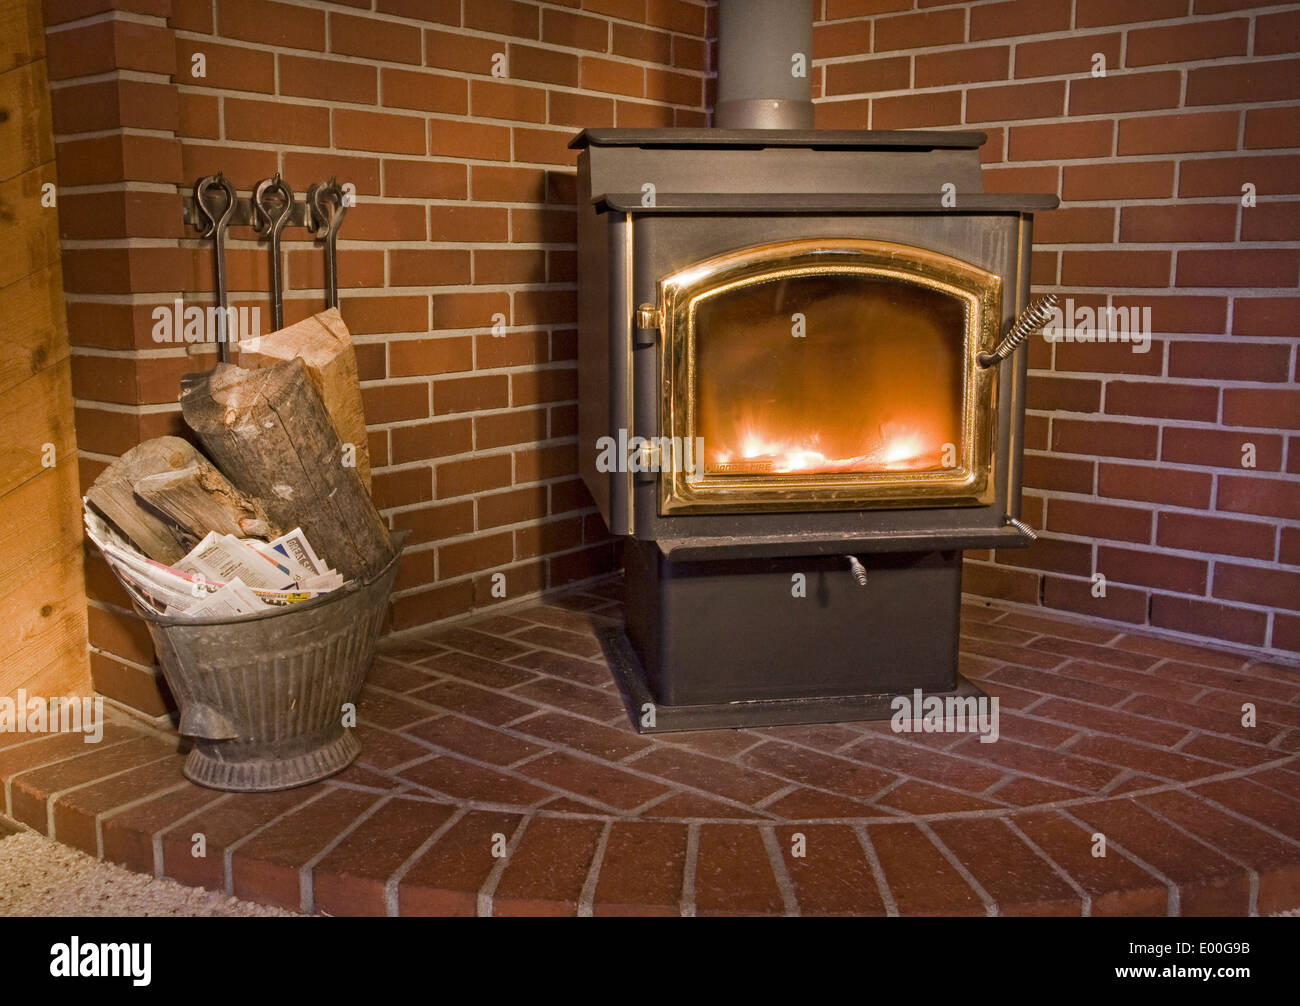 Detail of a wood-burning stove in the living room of a wooden home. - Stock Image